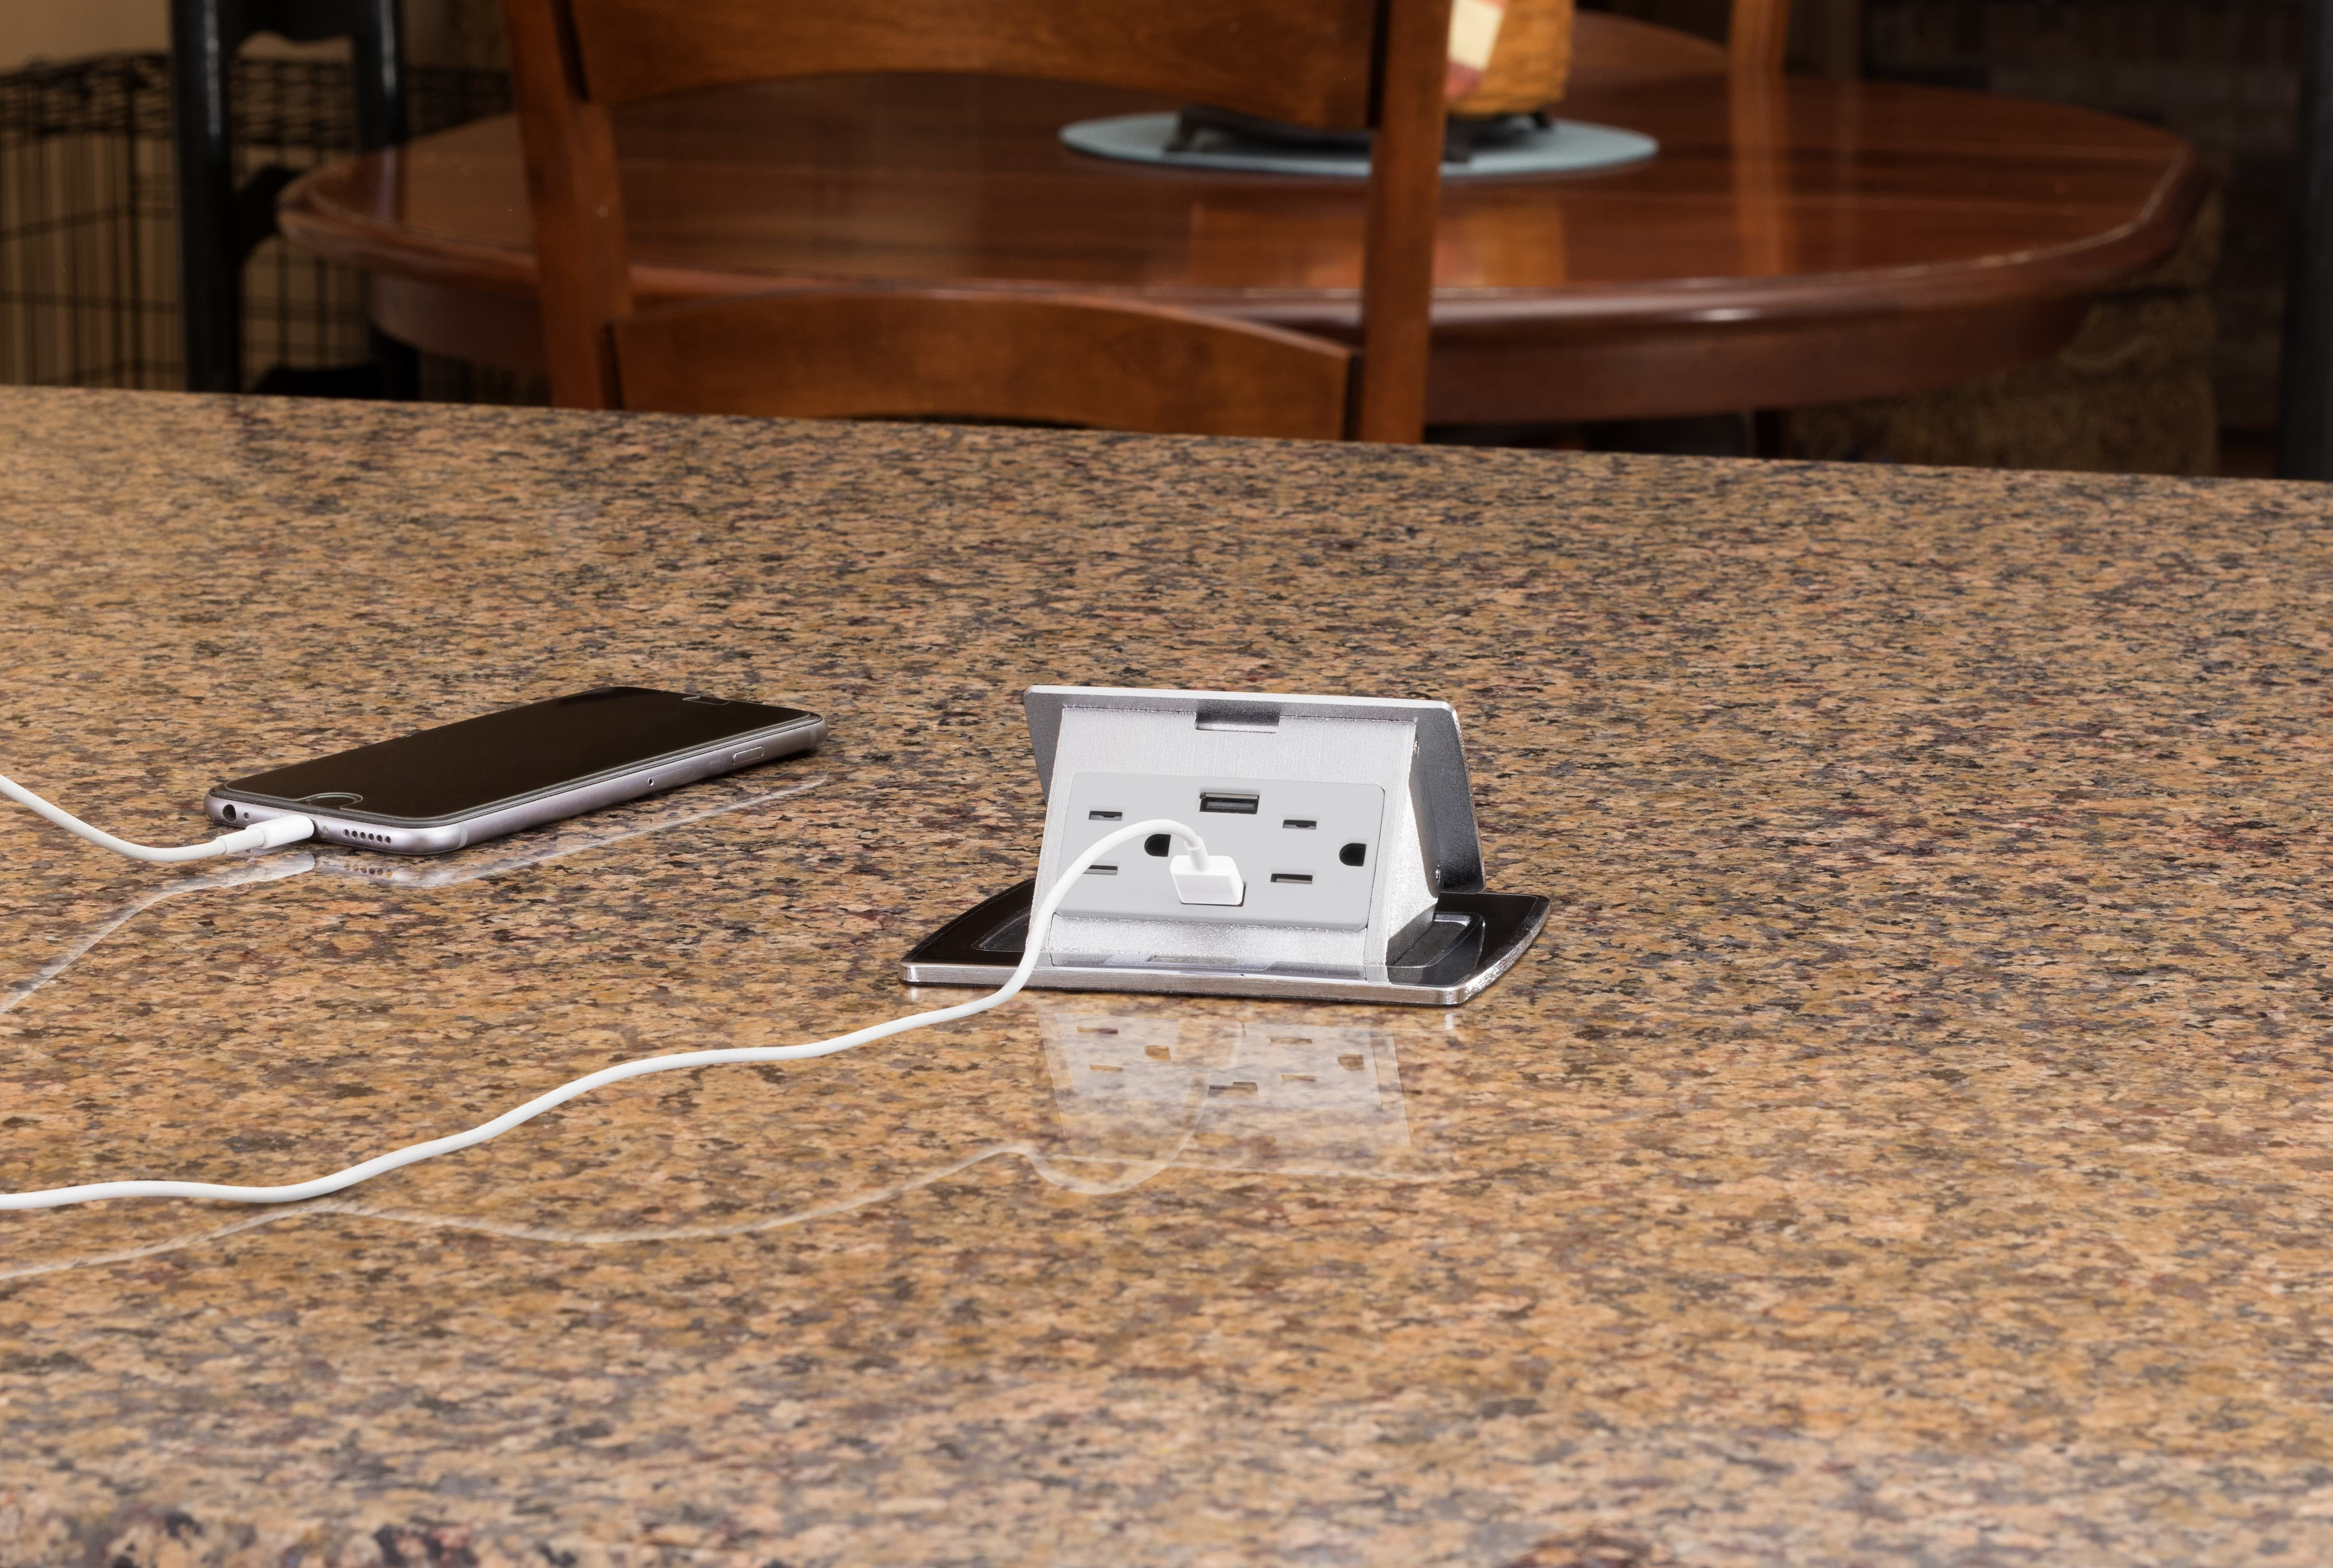 Lew Electric Pufp Ct Bk 2usb Countertop Pop Up Outlet Featuring 2 Power 2 Charging Usb And A Black Top Electrical Outlets Pop Up Outlets Pop Up